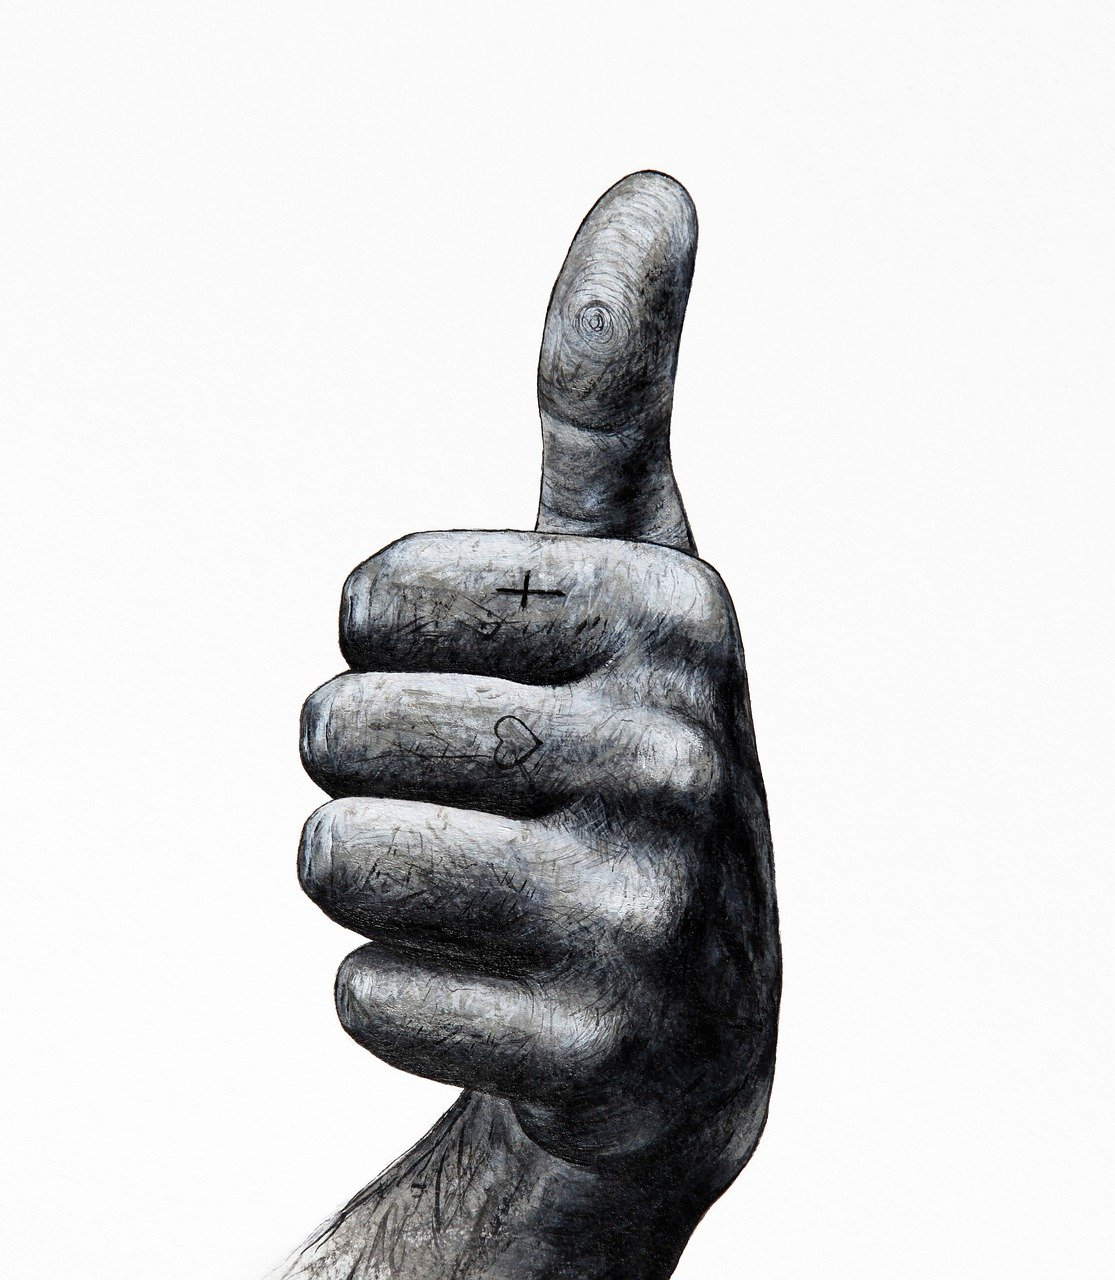 thumbs up, thumb, excellent